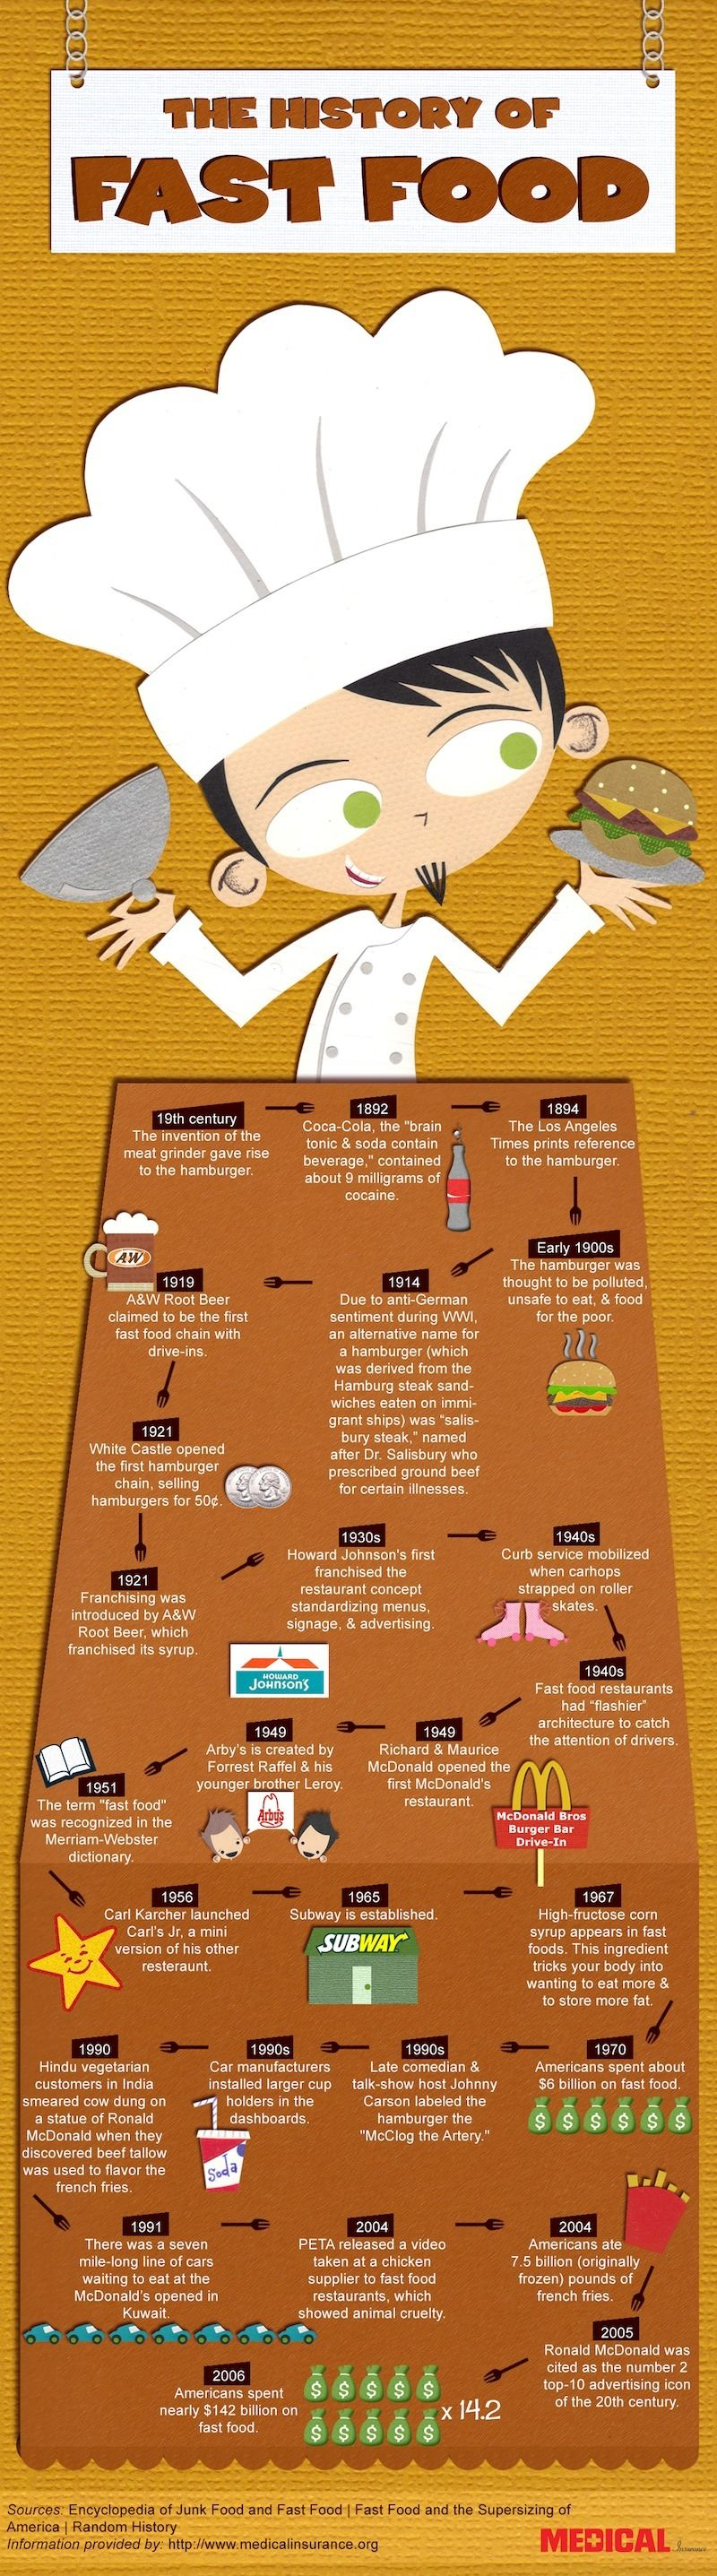 History of fast food food infographic